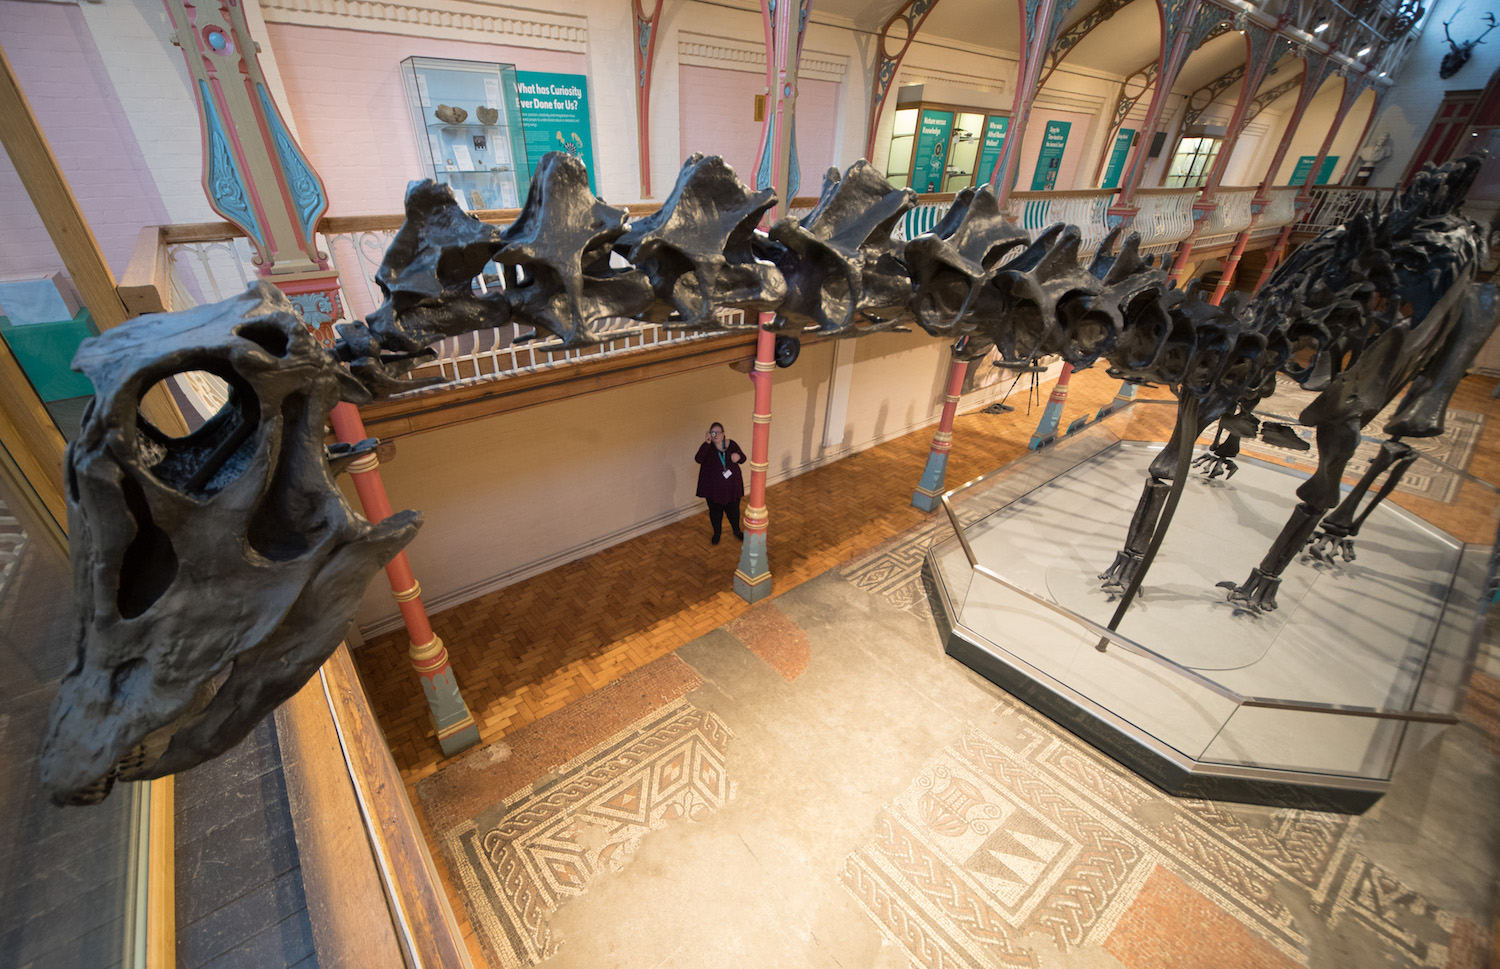 Dippy the dinosaur, a diplodocus skeleton on loan from the Natural History Museum is unveiled at Dorset County Museum in Dorchester on the first stage of an eight-stop tour of the UK on Feb. 9. Some 5 million people are expected to see Dippy over the next two years at venues ranging from the Welsh assembly to Norwich Cathedral.  (Photo by Matt Cardy/Getty Images)